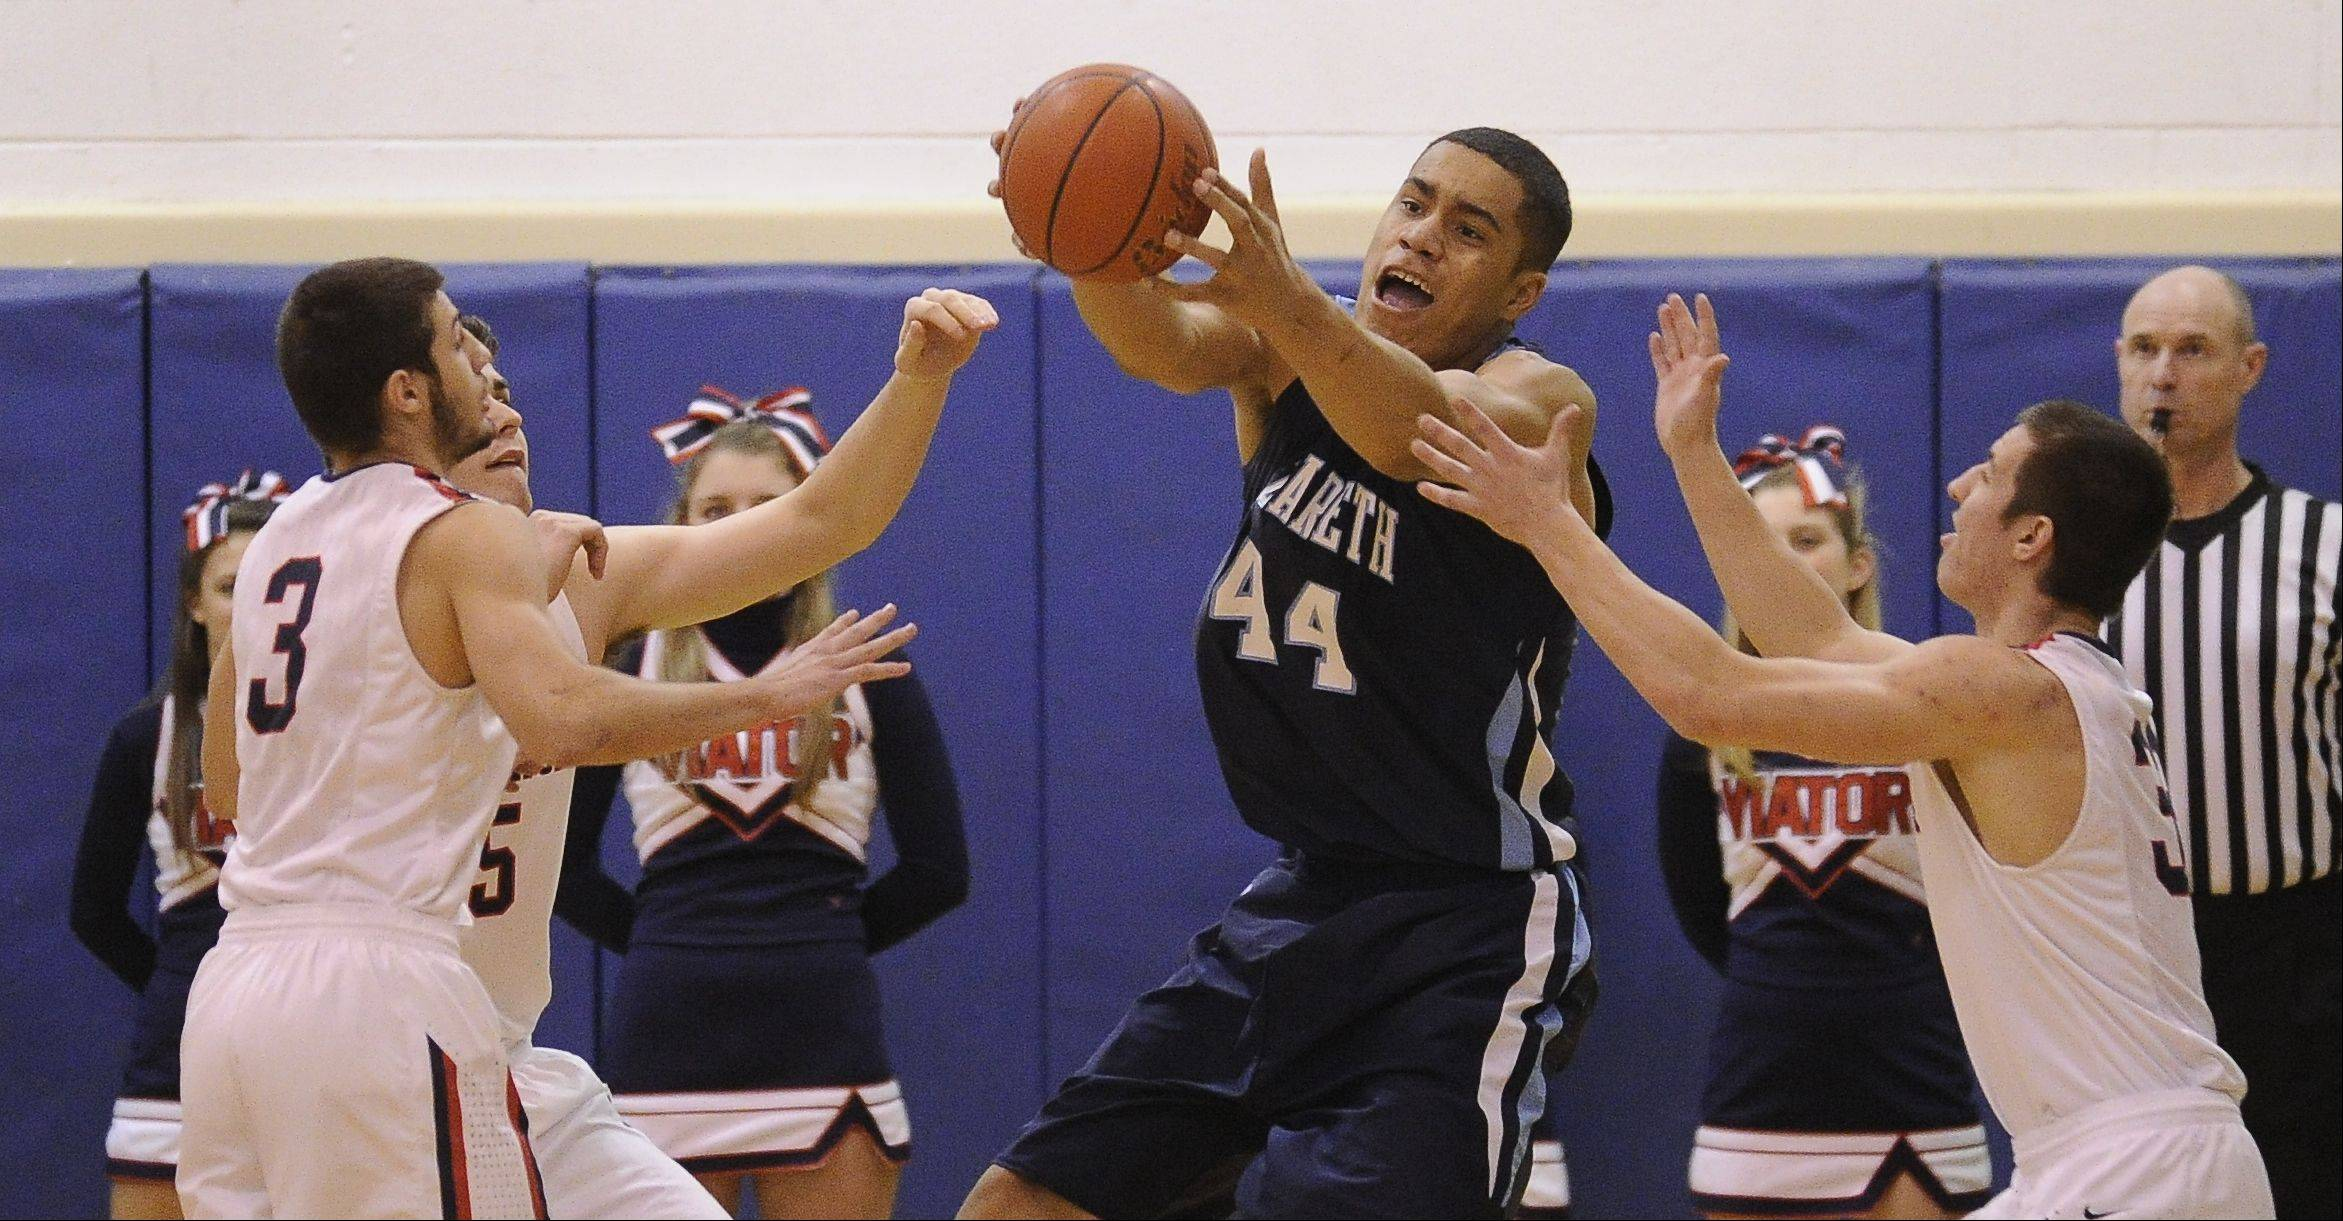 Images from the Nazareth vs. St. Viator boys basketball game in Arlington Heights on Monday, February 13th.